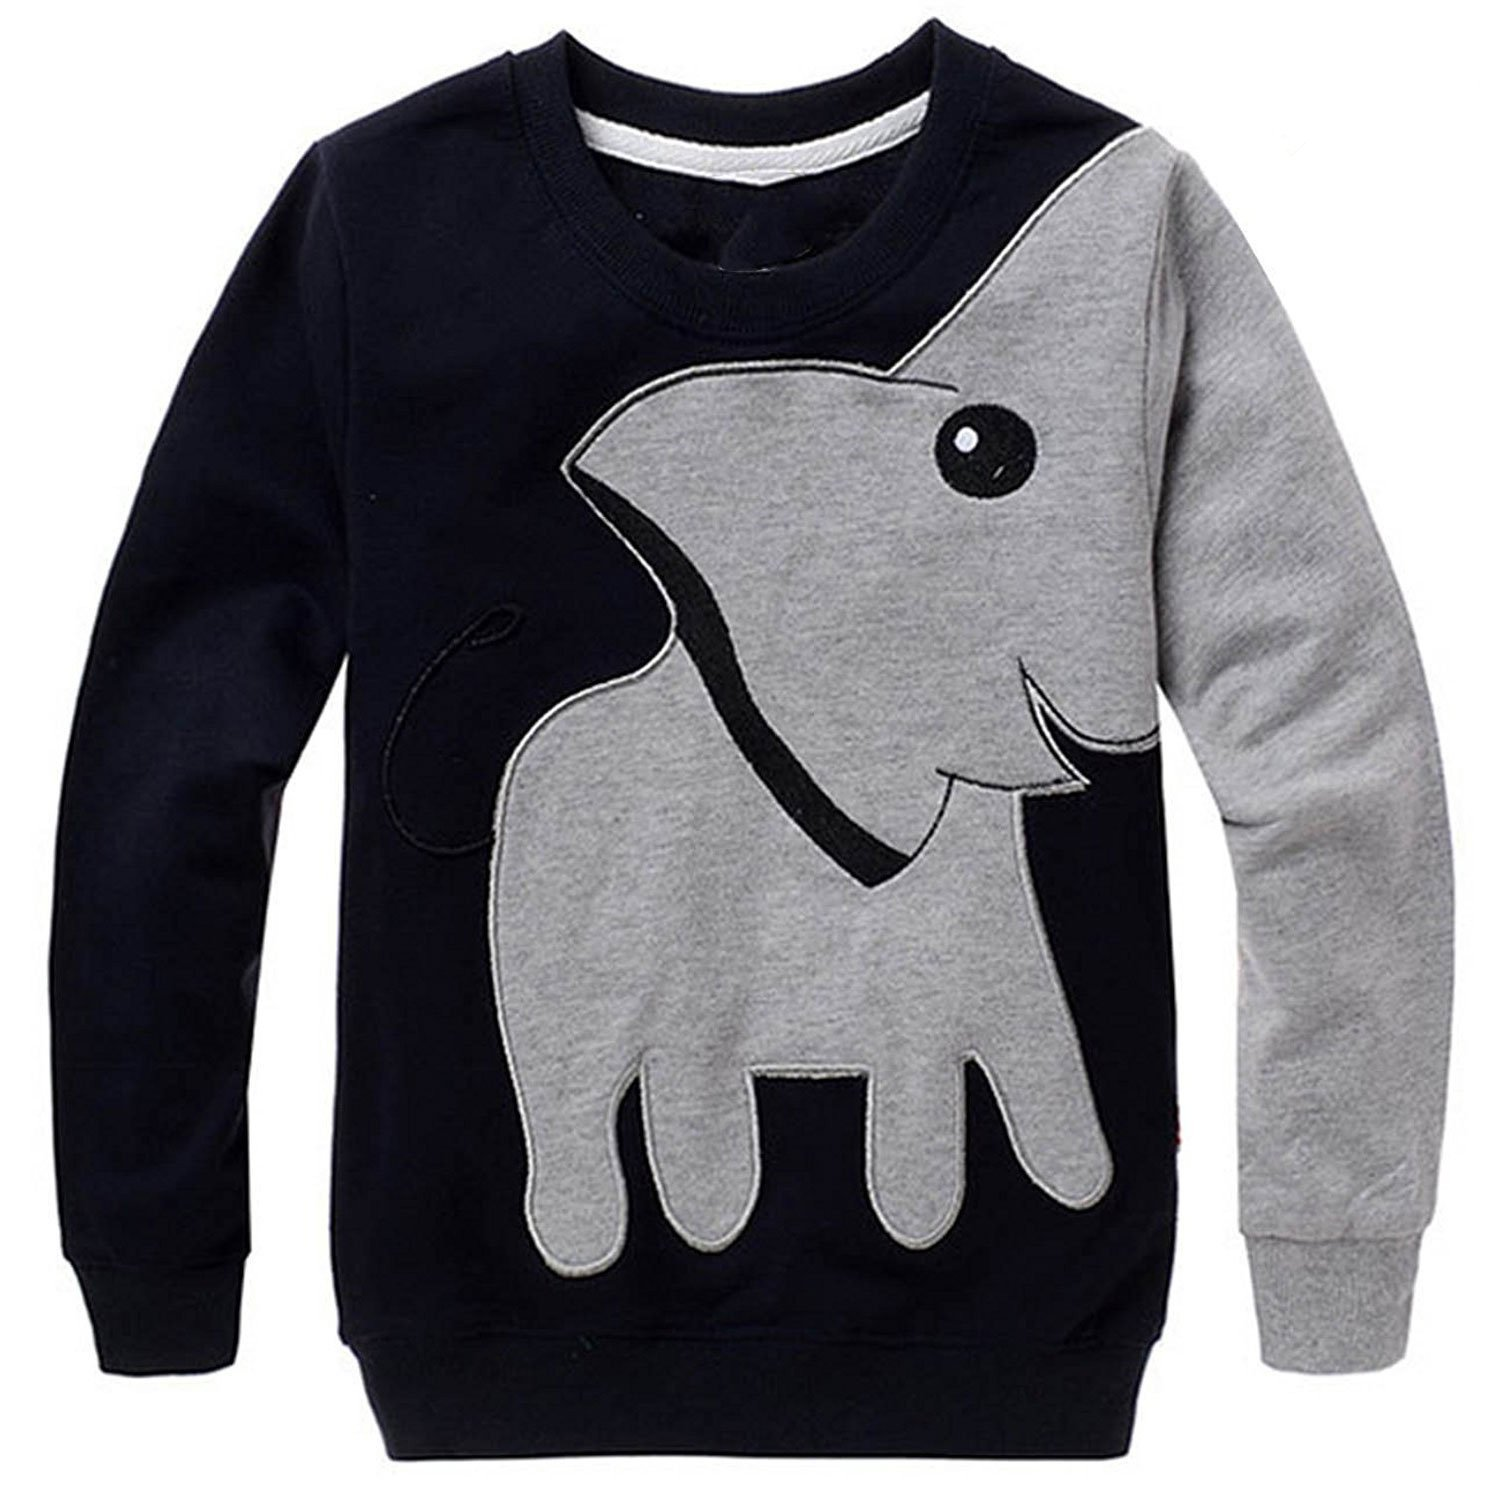 LitBud Toddler Boys Elephant Shirt for Kids Boy Sweatshirt Pullover Casual Spring Tops Jumpers Size 6-7 Years Black